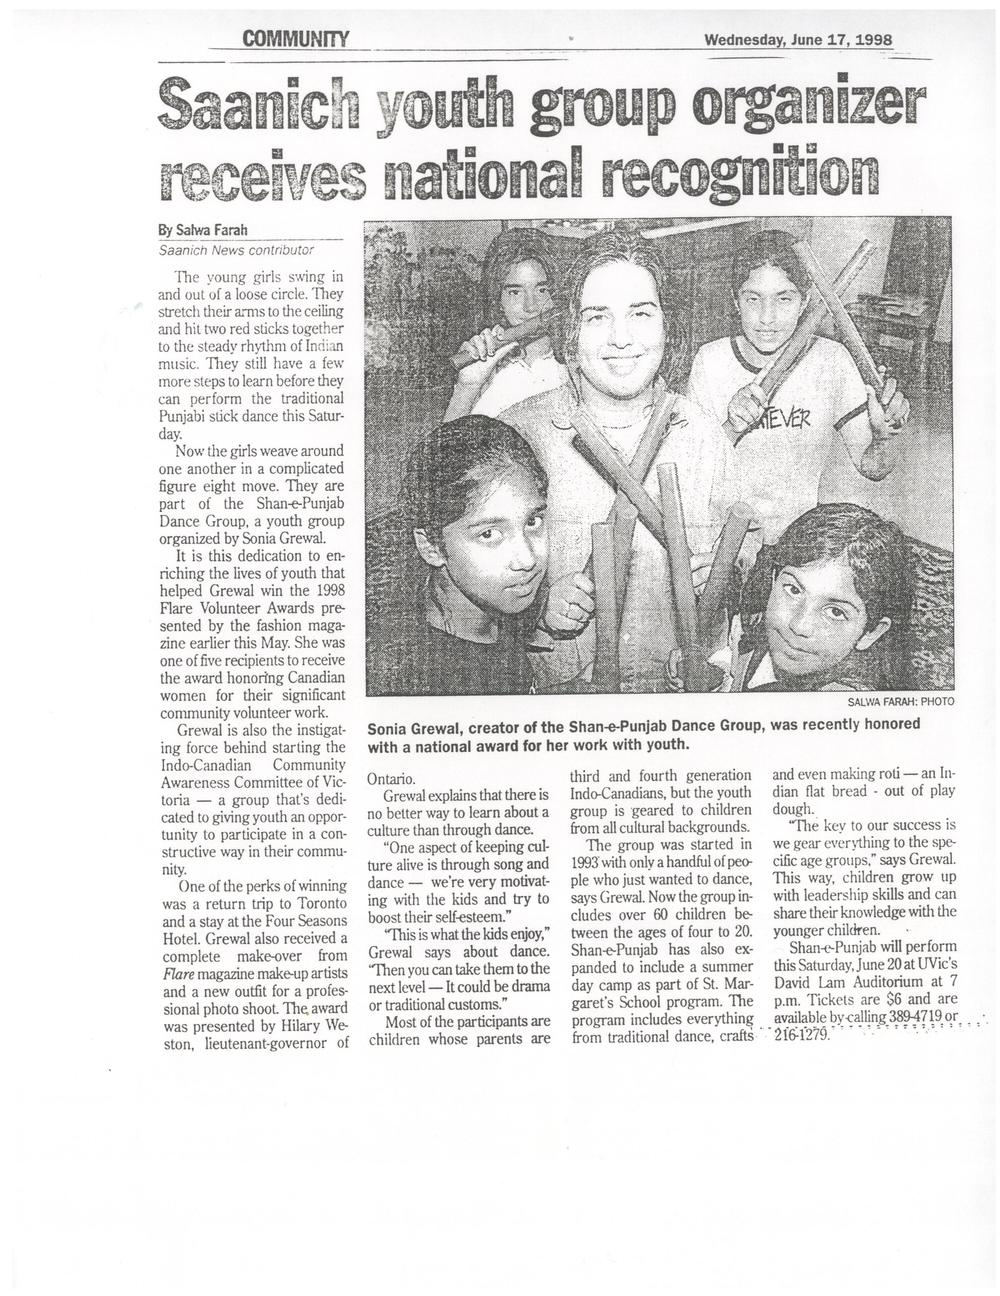 1998_saanich_youth_group_organizer_receives_national_recognition.jpg